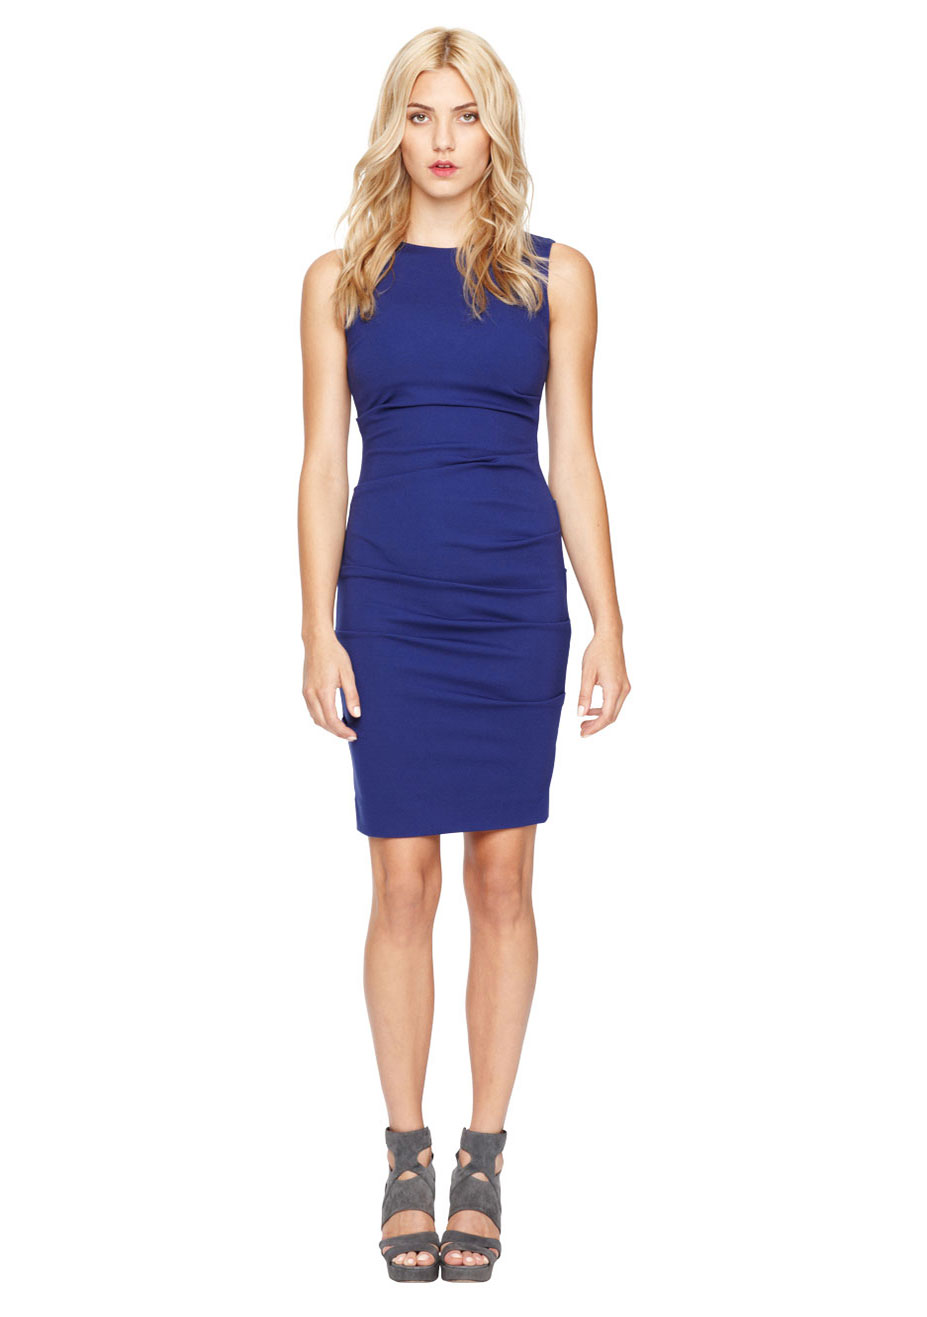 Nicole Miller Sleeveless Tucked Dress